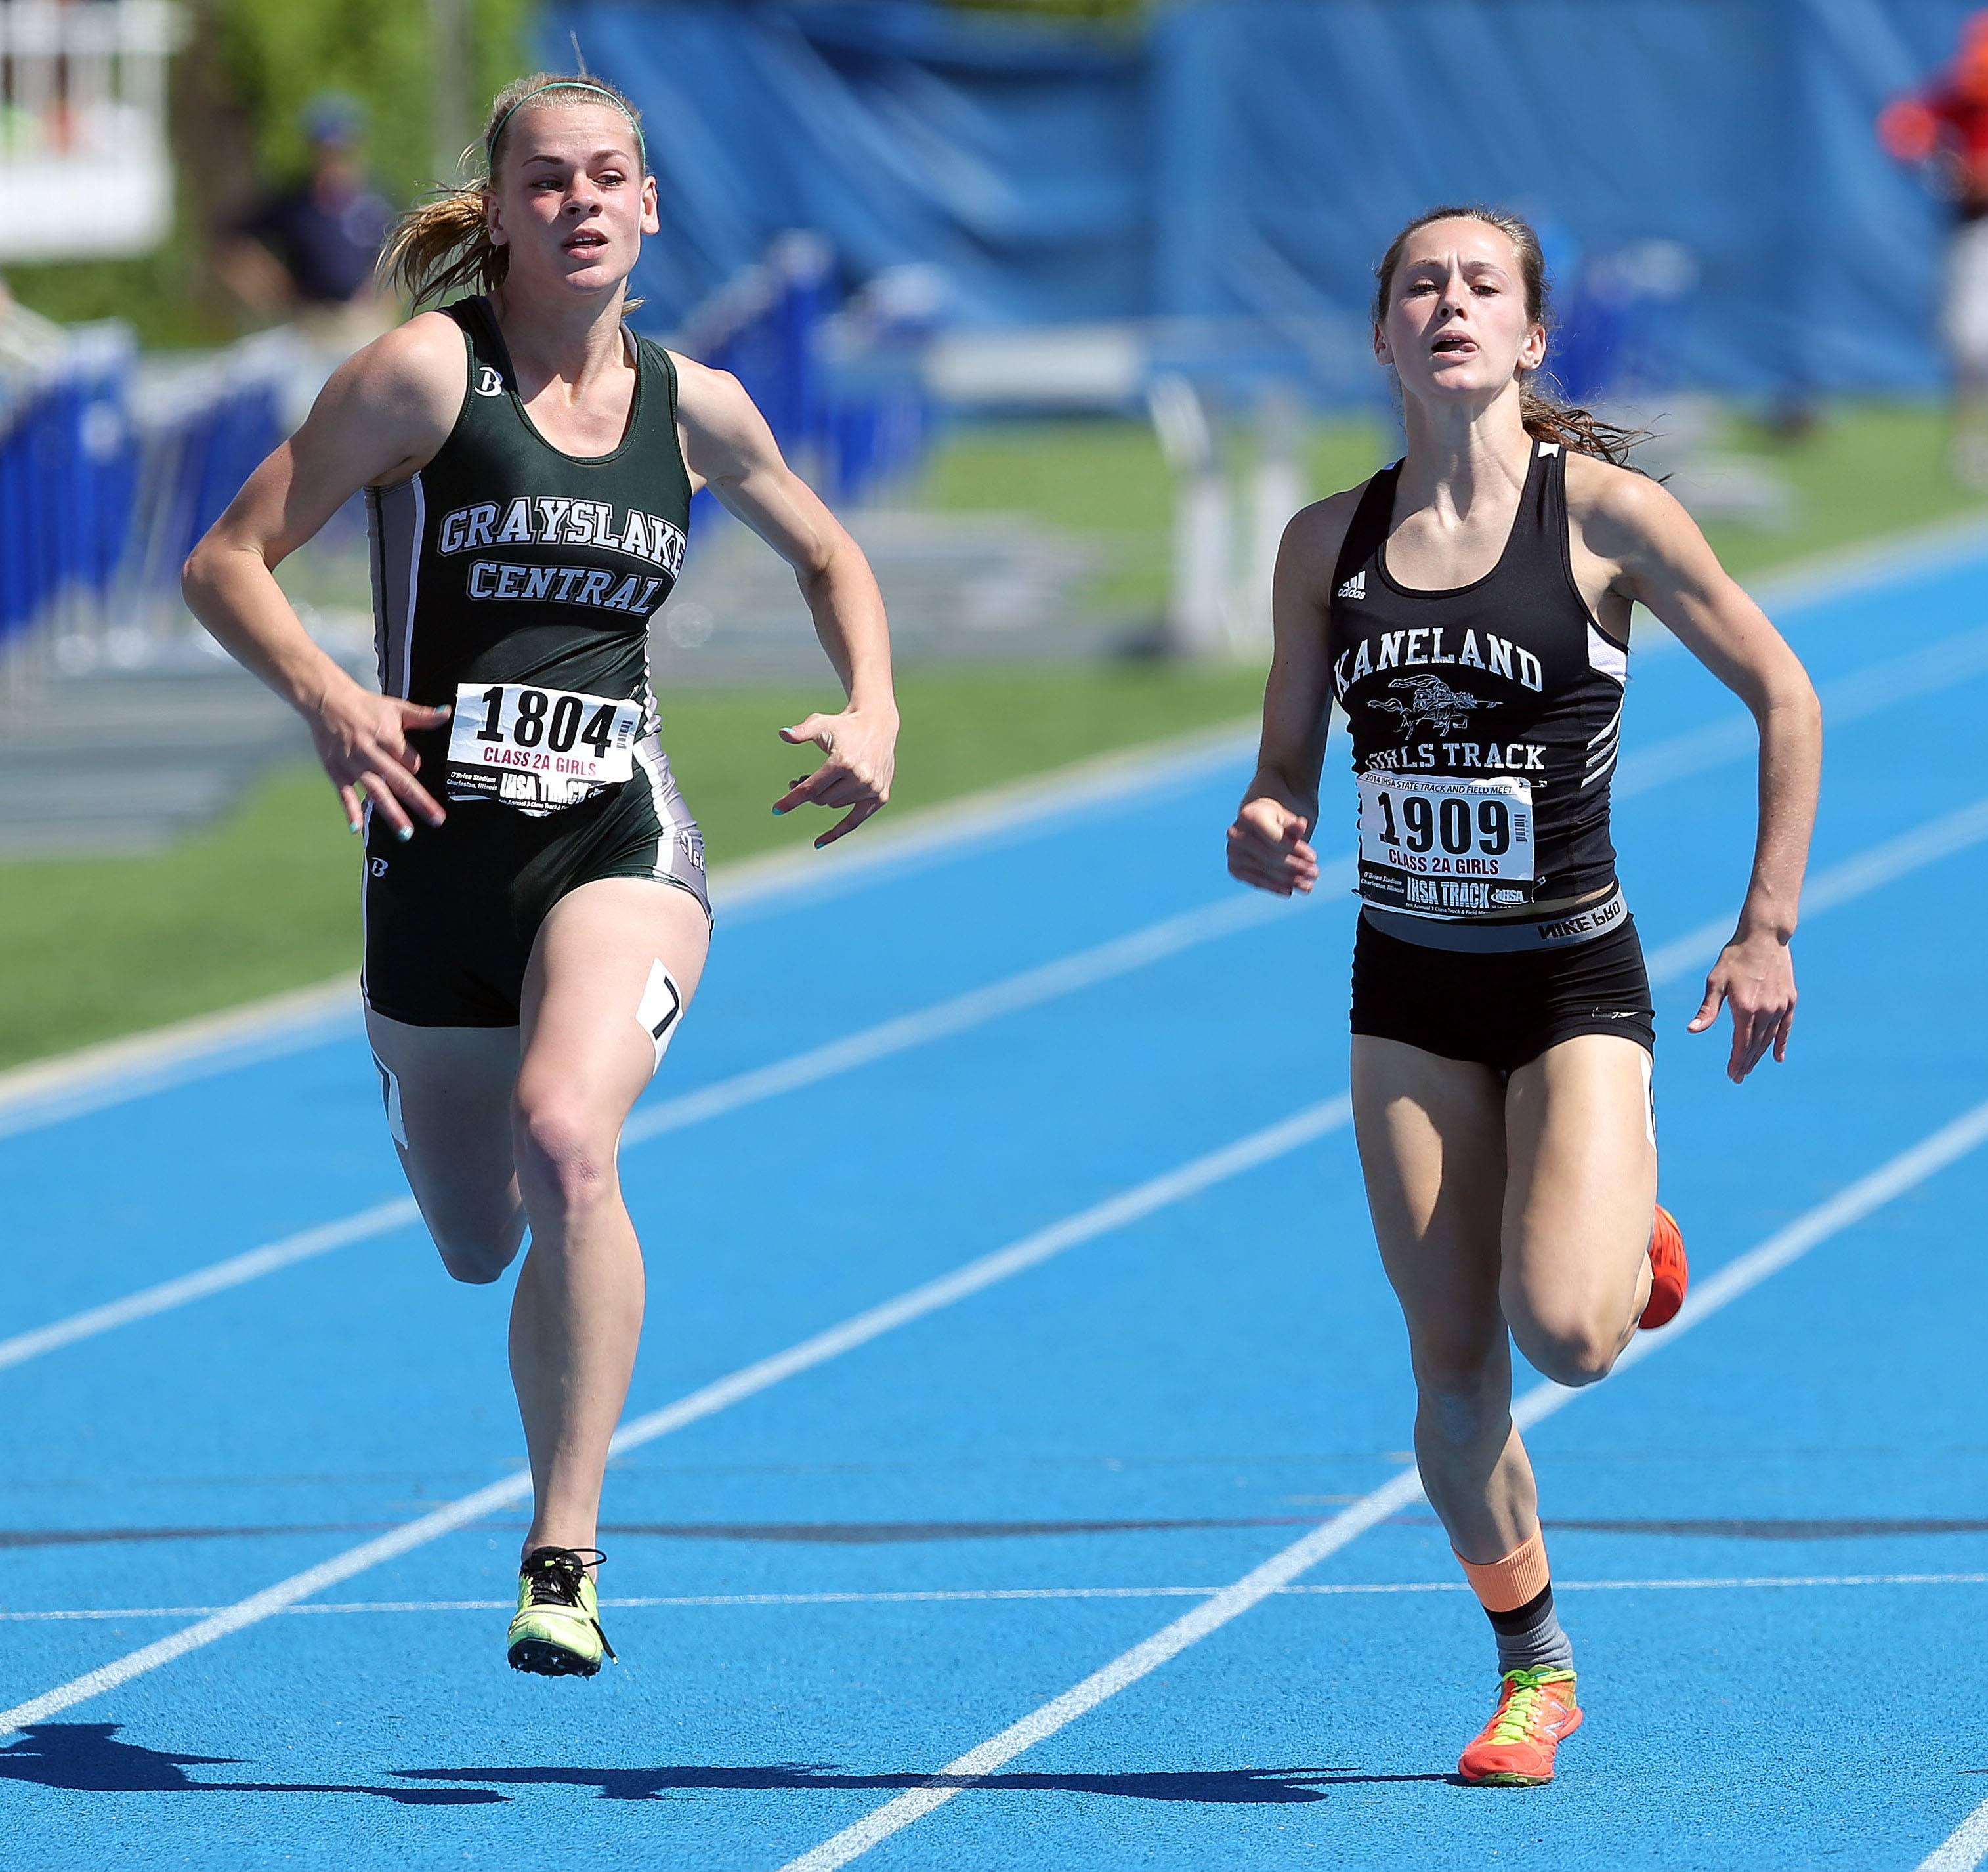 Grayslake Central's Leah Kloss and Kaneland's Nicole Sreenam run in the 100-meter dash during the prelims of the girls track and field state meet at Eastern Illinois University in Charleston Friday.